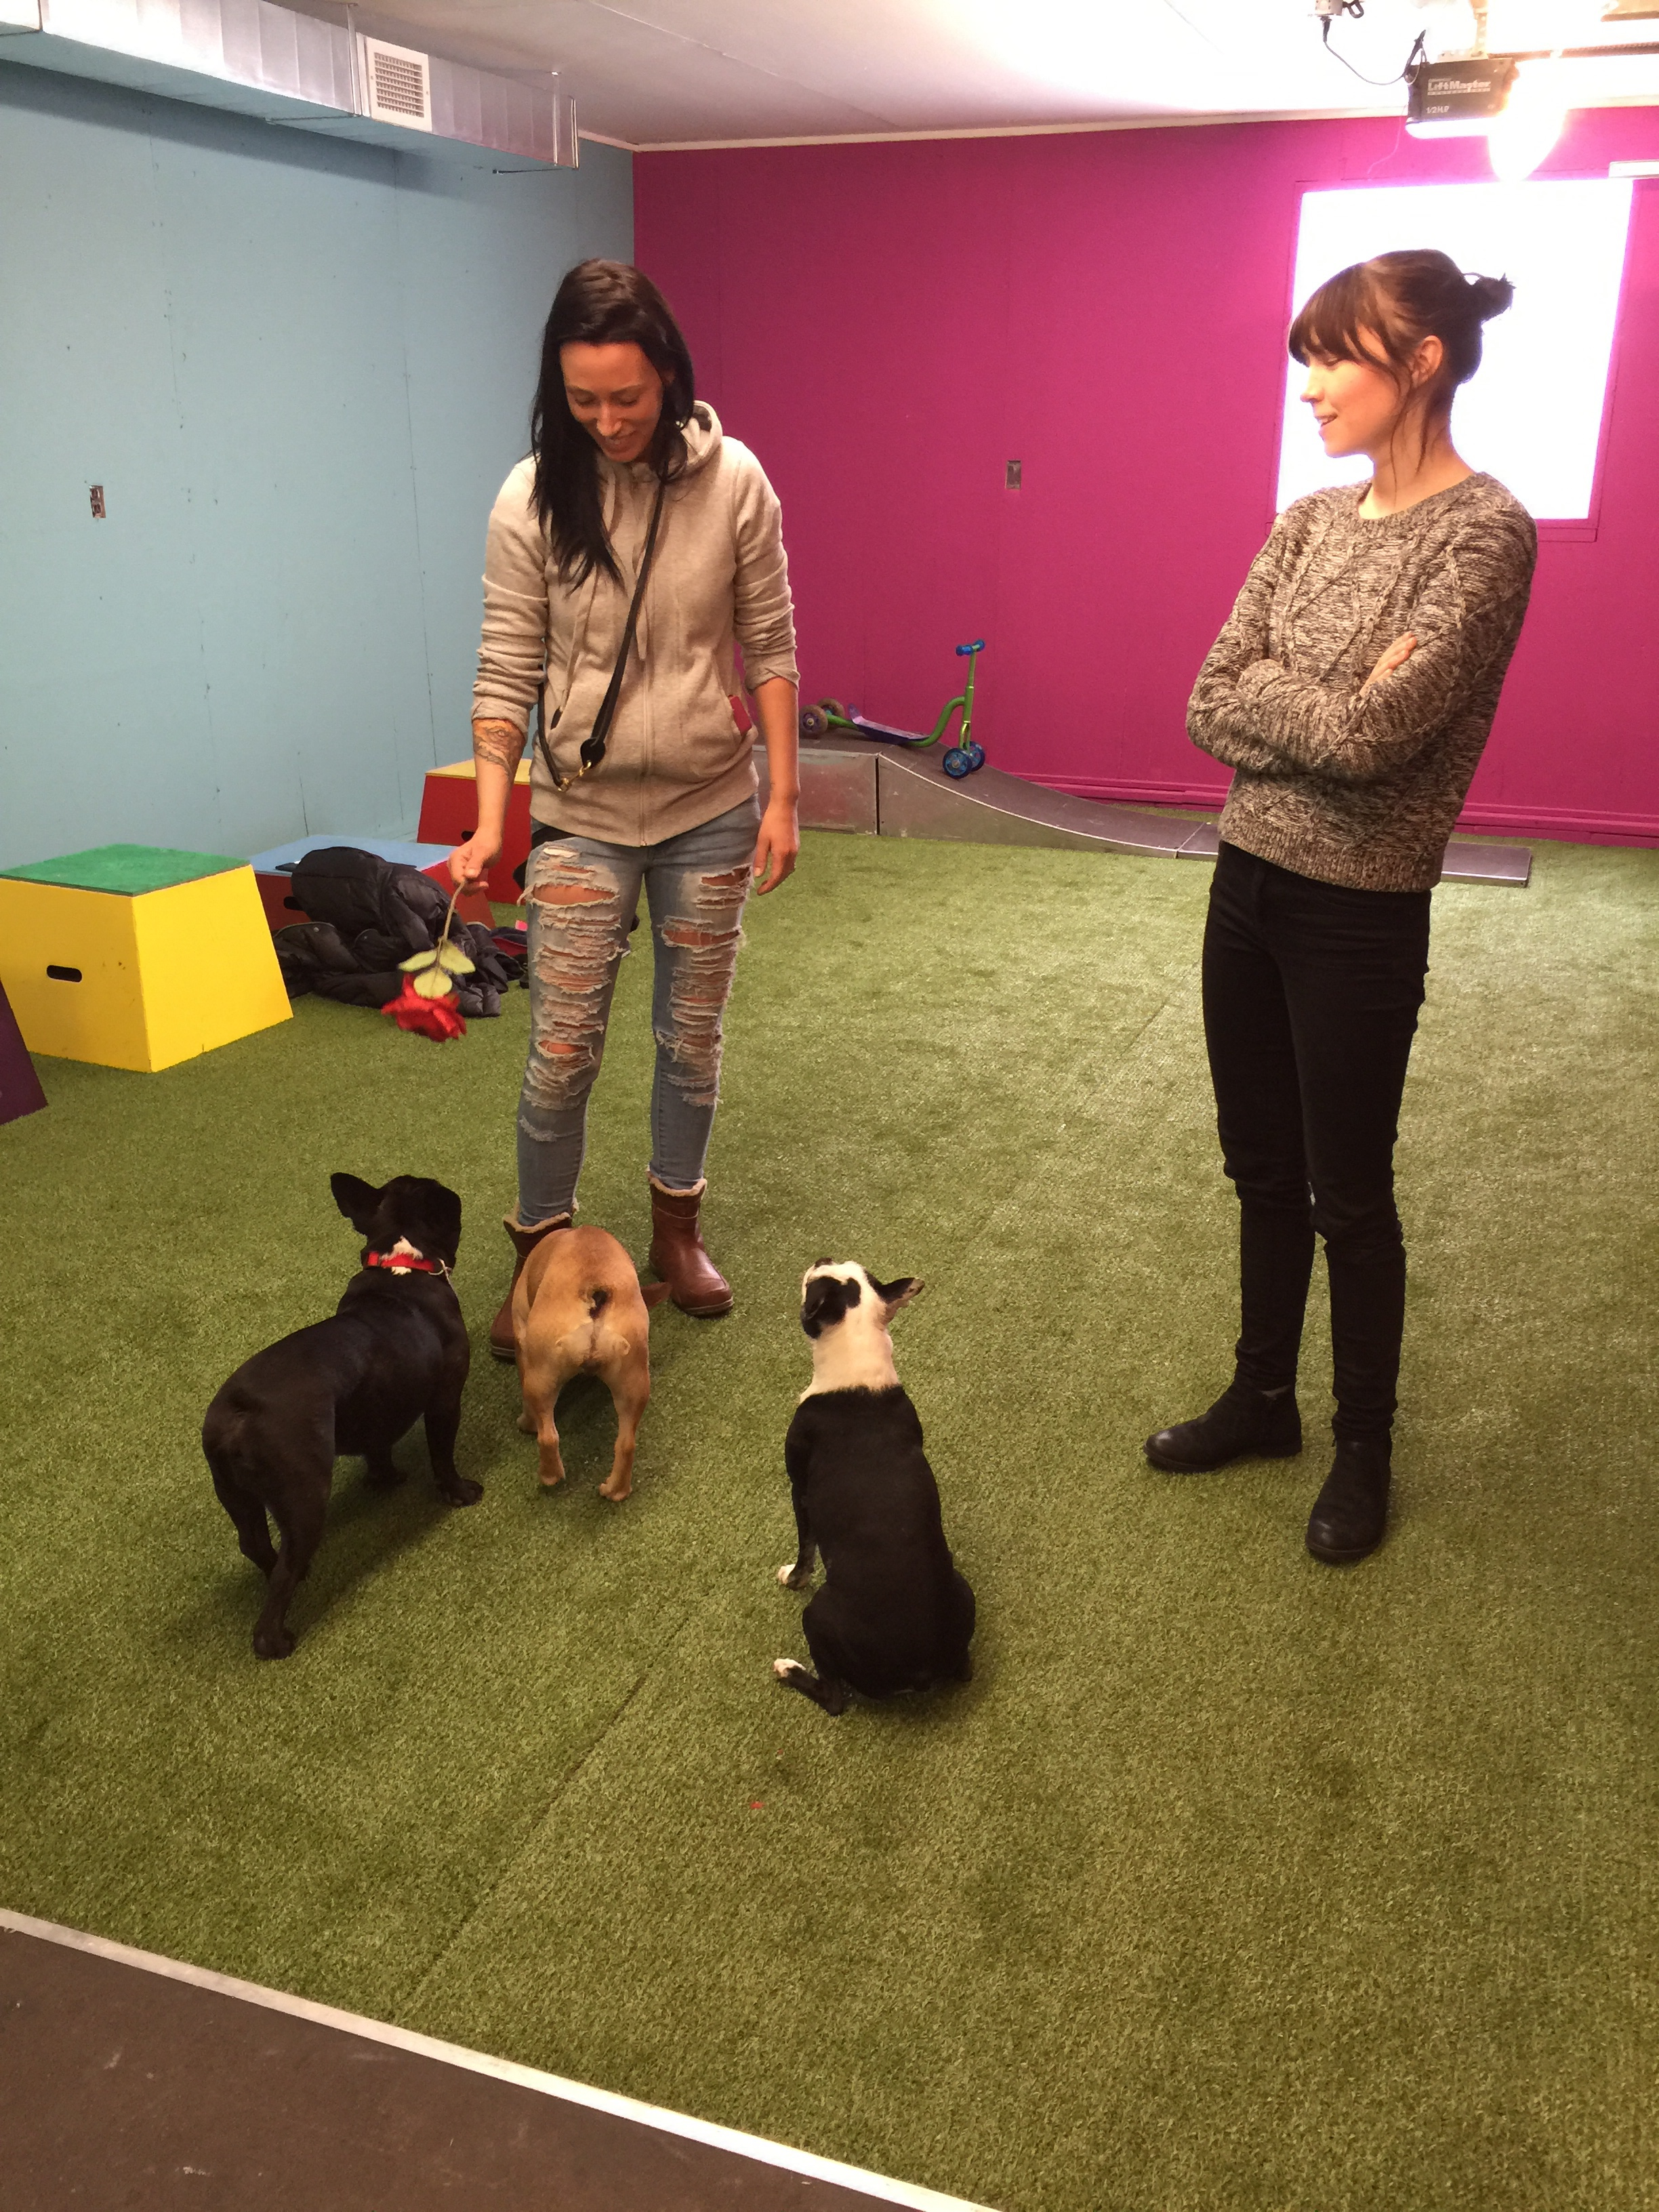 This is where MELISSA MILLET from IN DOGS WE TRUST plus THE ULTIMUTTS hang out!! Melissa is made out of awesome, you guys!! She is sooperfamous for teaching puppies how to be good puppy citizens, plus even how to do sooper'mazing trickery like the Ultimutts do with only positive lovings!! Yes!! That is why Mum plus Pop wanted to take me plus Mirabelle here so much!! To do brainlearning, butt to get more lovings too!!...................